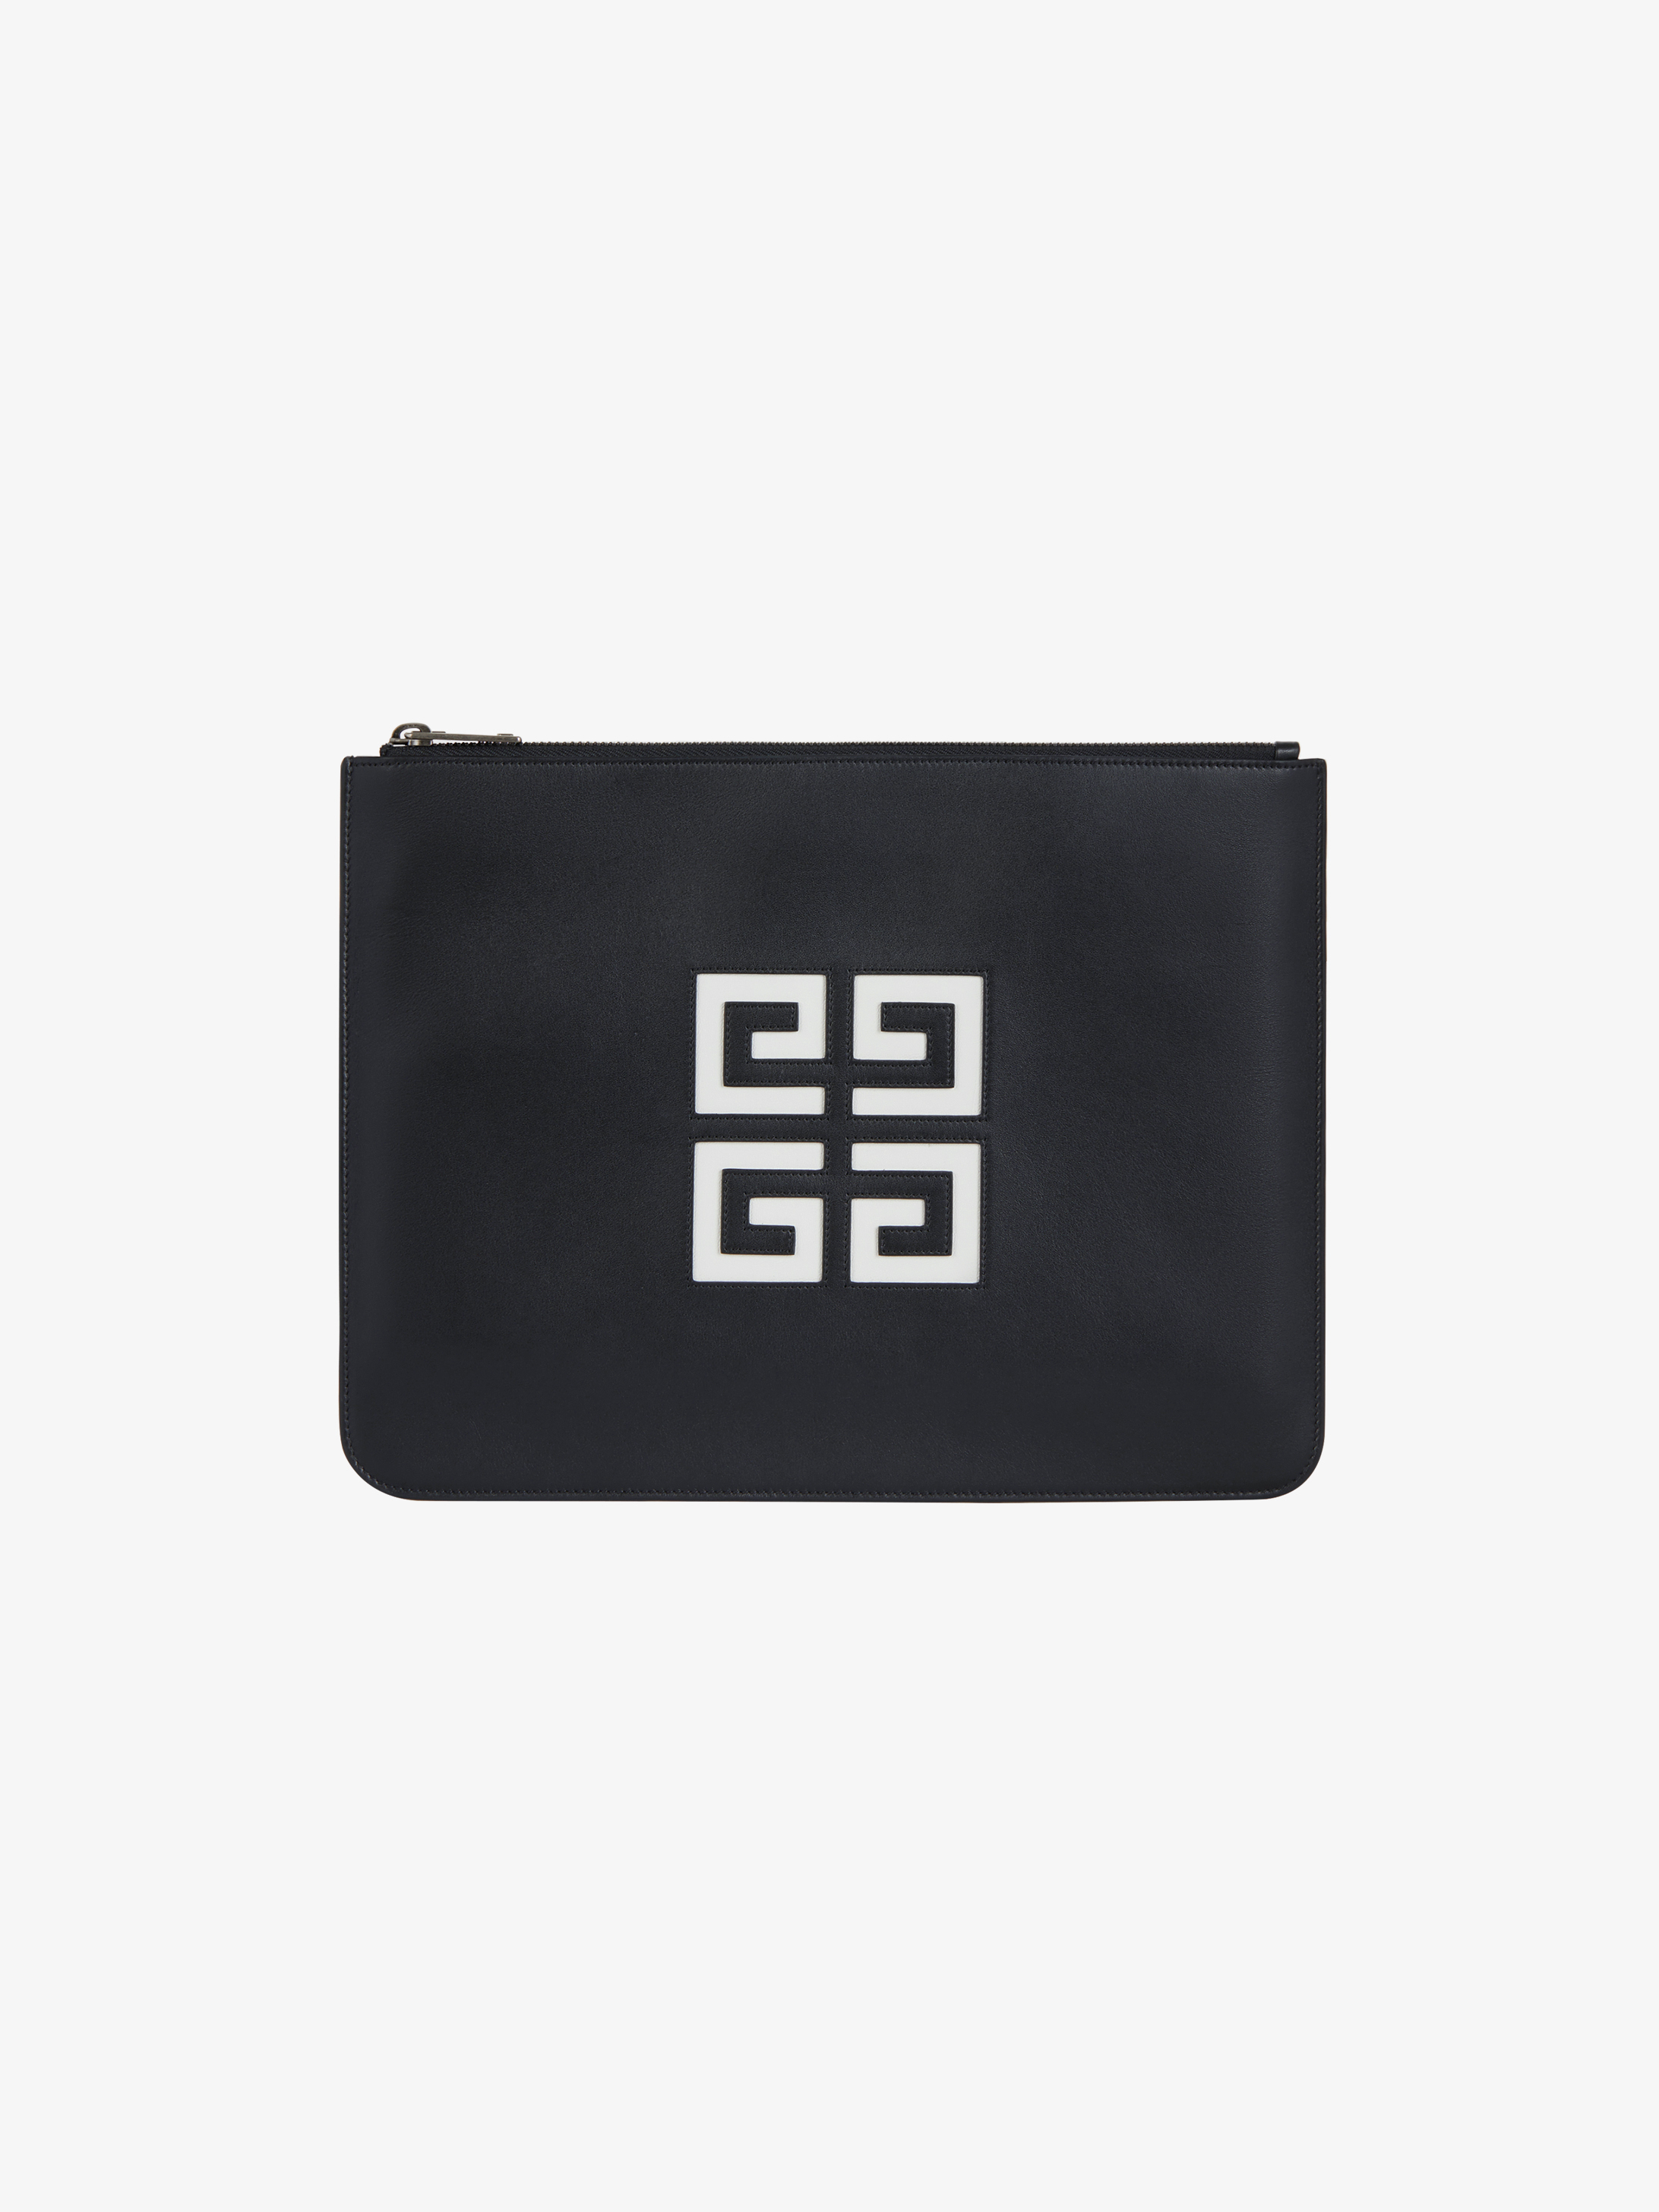 4G large zipped pouch in leather